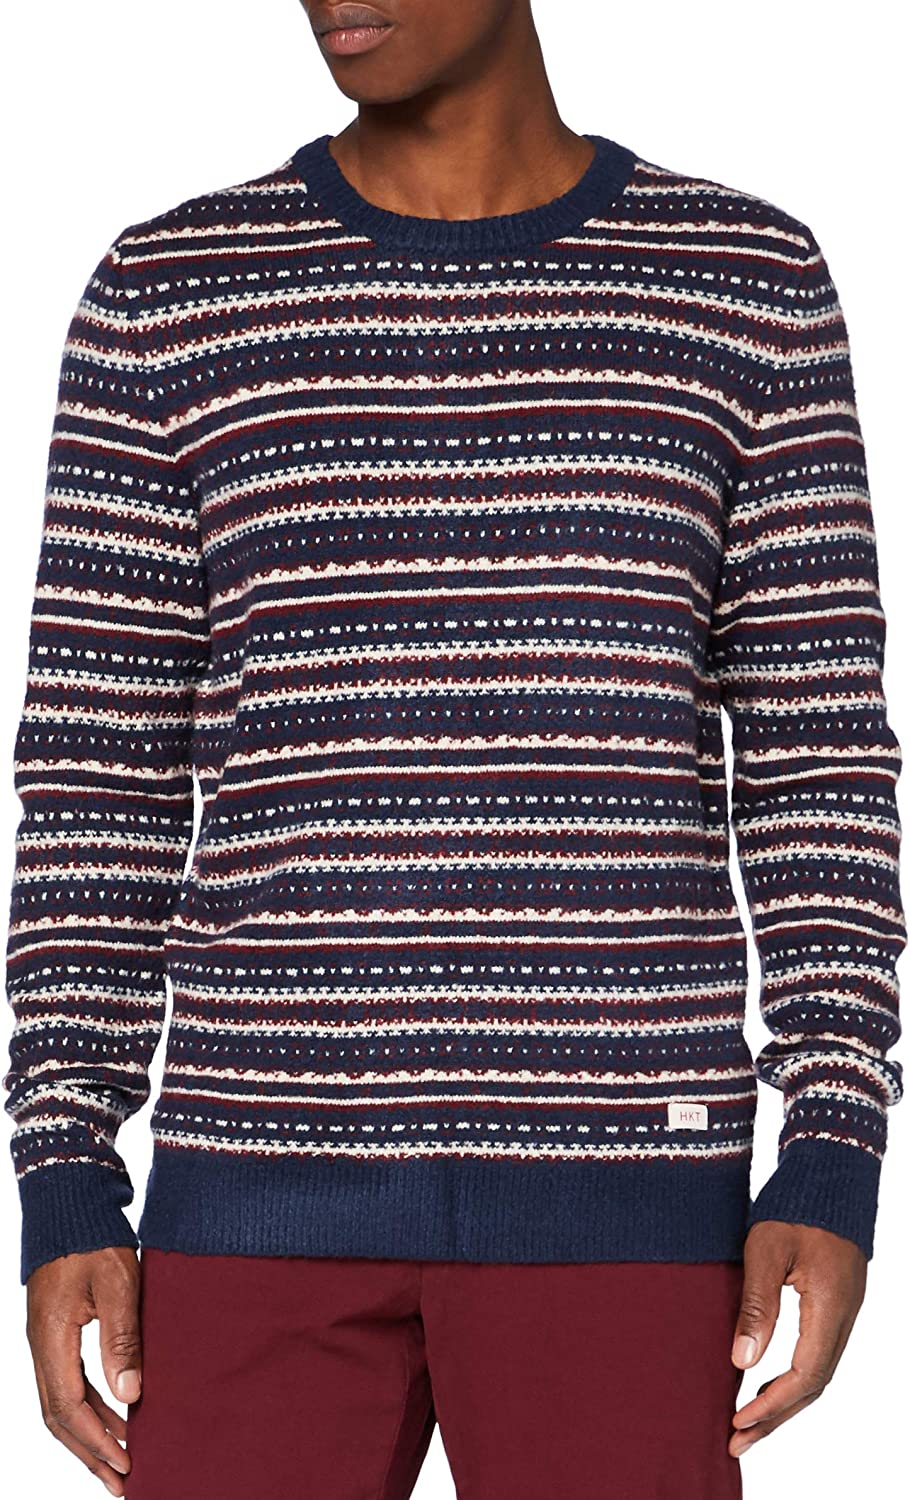 Men's Vintage Sweaters, Retro Jumpers 1920s to 1980s Hackett London Mens Hkt Fairisle Crew Sweater £73.35 AT vintagedancer.com